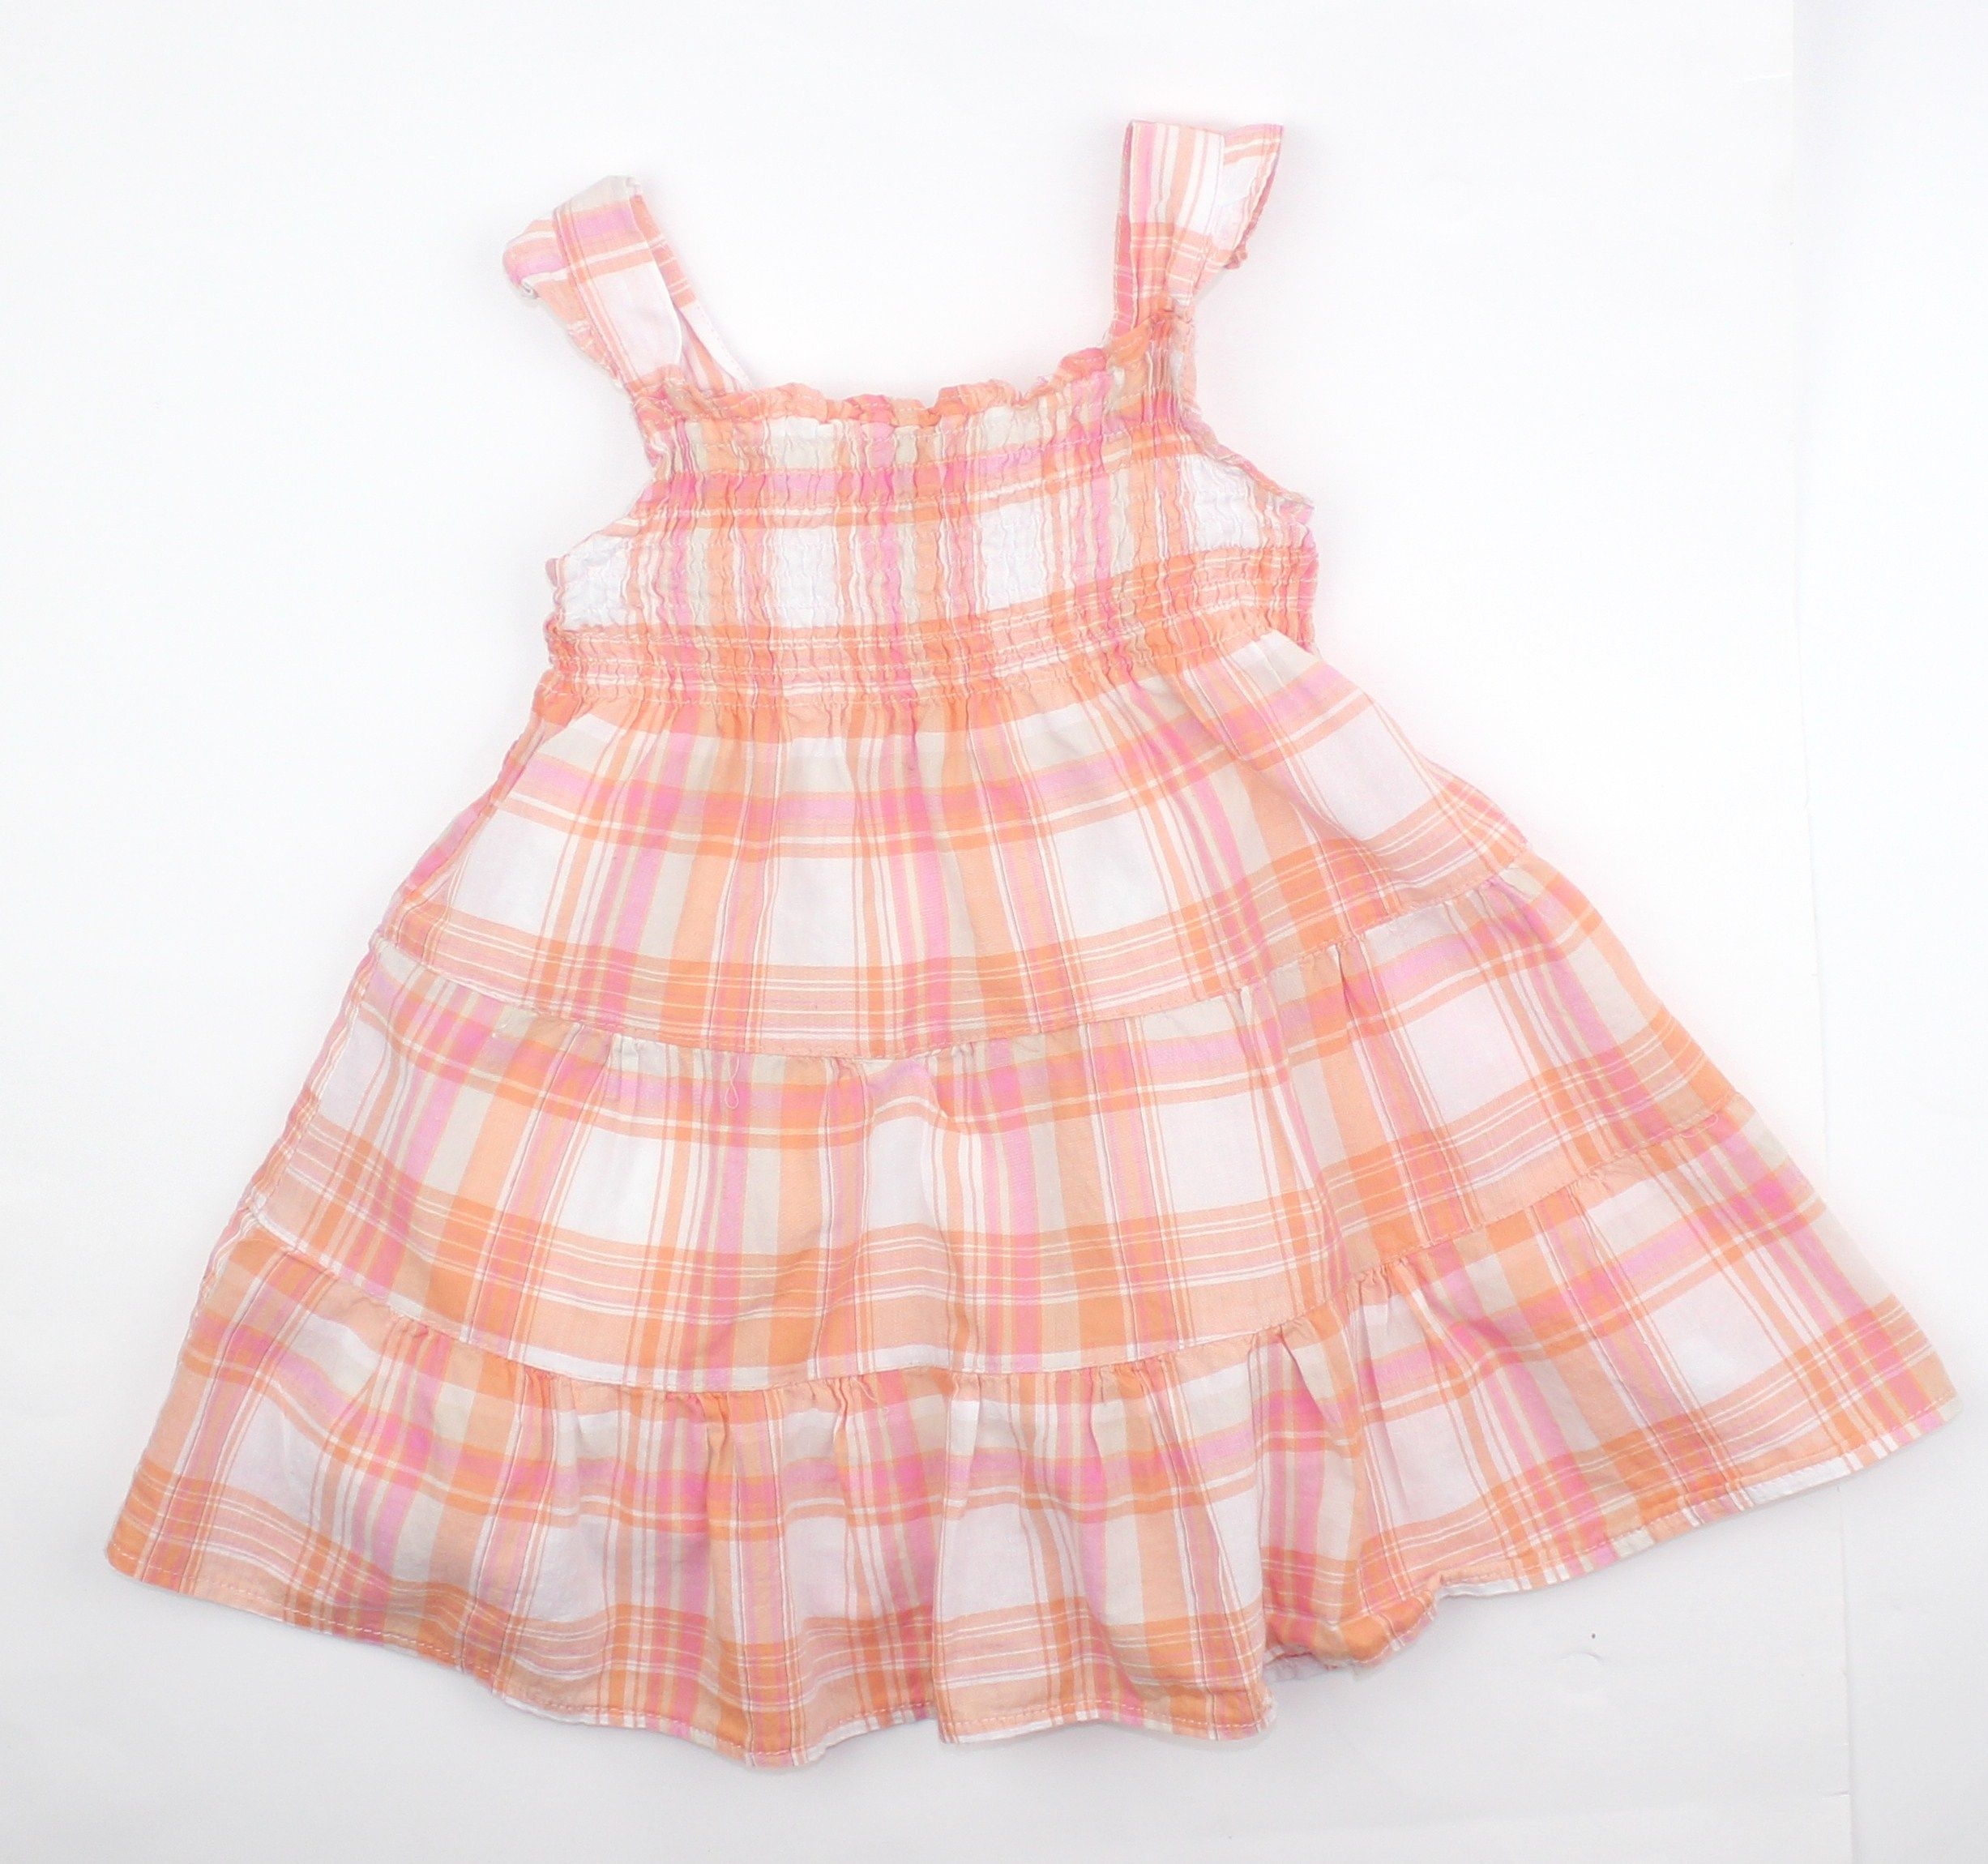 Baby Girl Summer Dress Fully Lined in Peaches Pinks with Ruffled